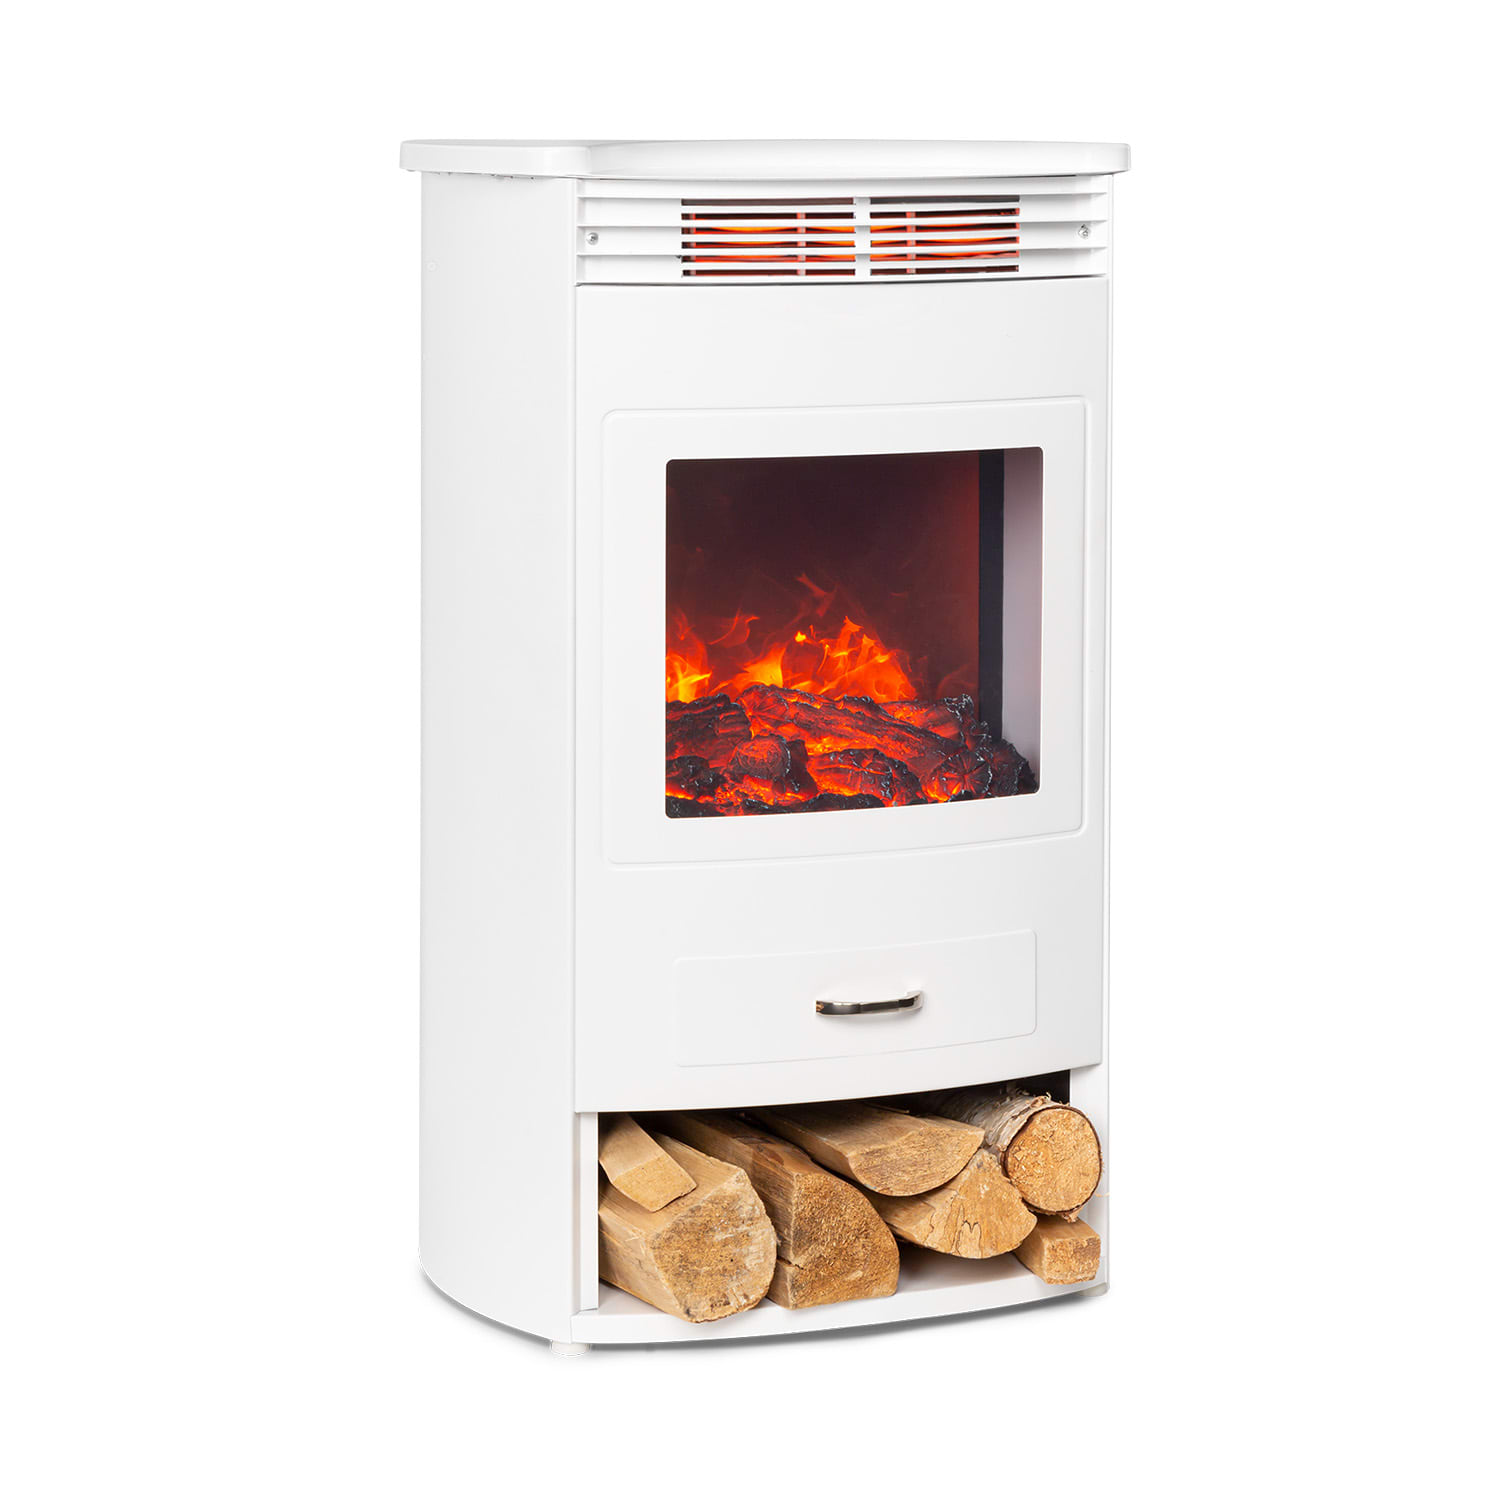 Bormio WH, Electric Fireplace, 950 / 1900W, Thermostat, Weekly Timer, White